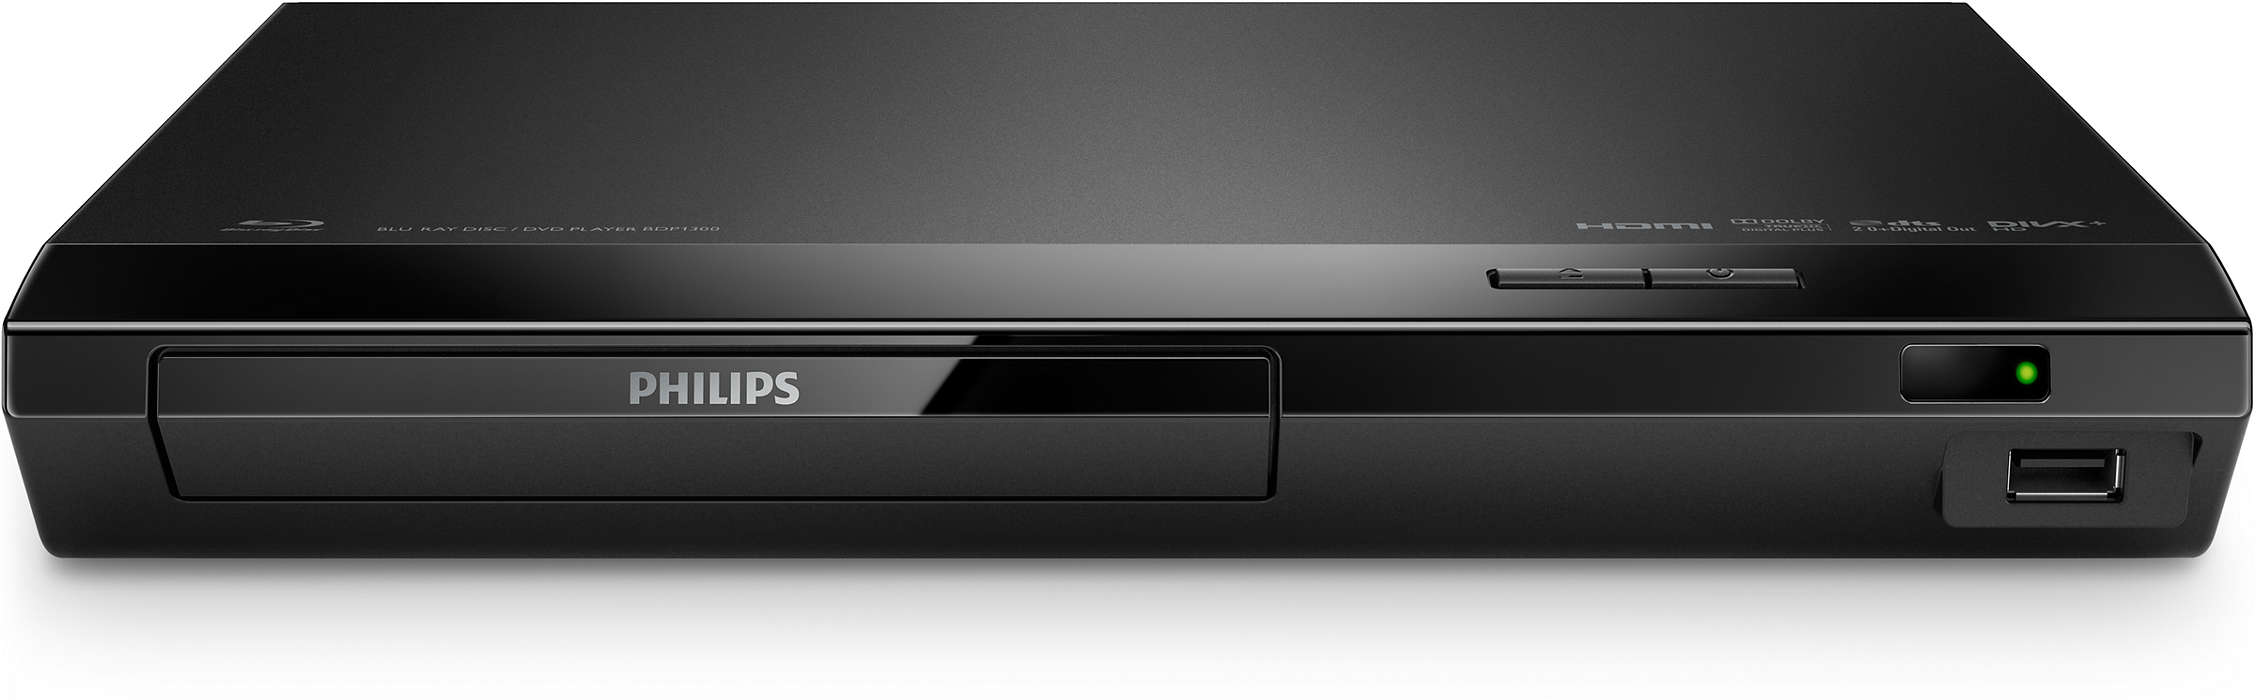 Play all your movies from Blu-ray discs and DVDs